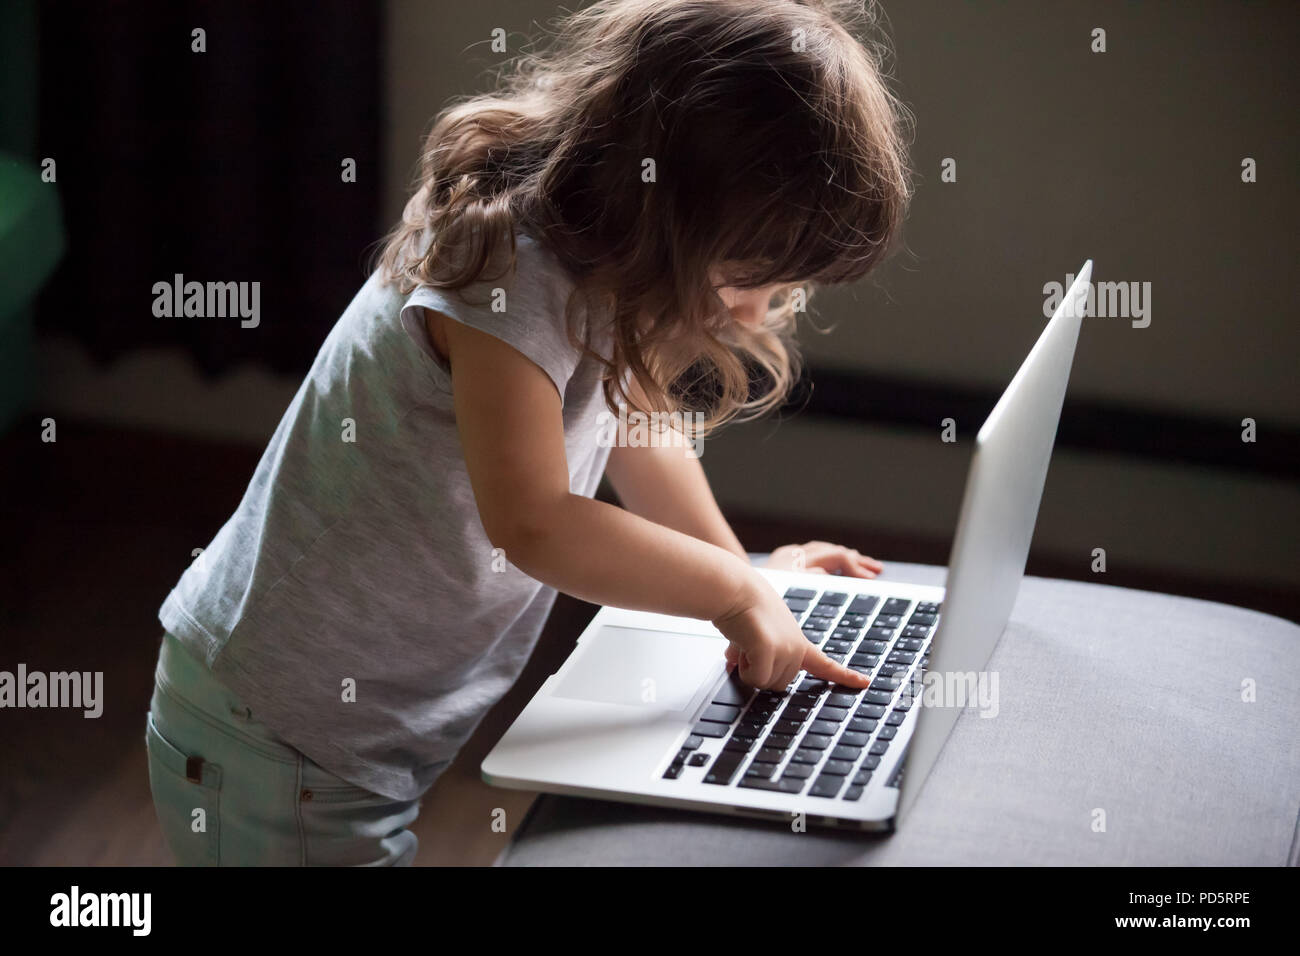 Curious girl using laptop, pc control security for kid concept - Stock Image